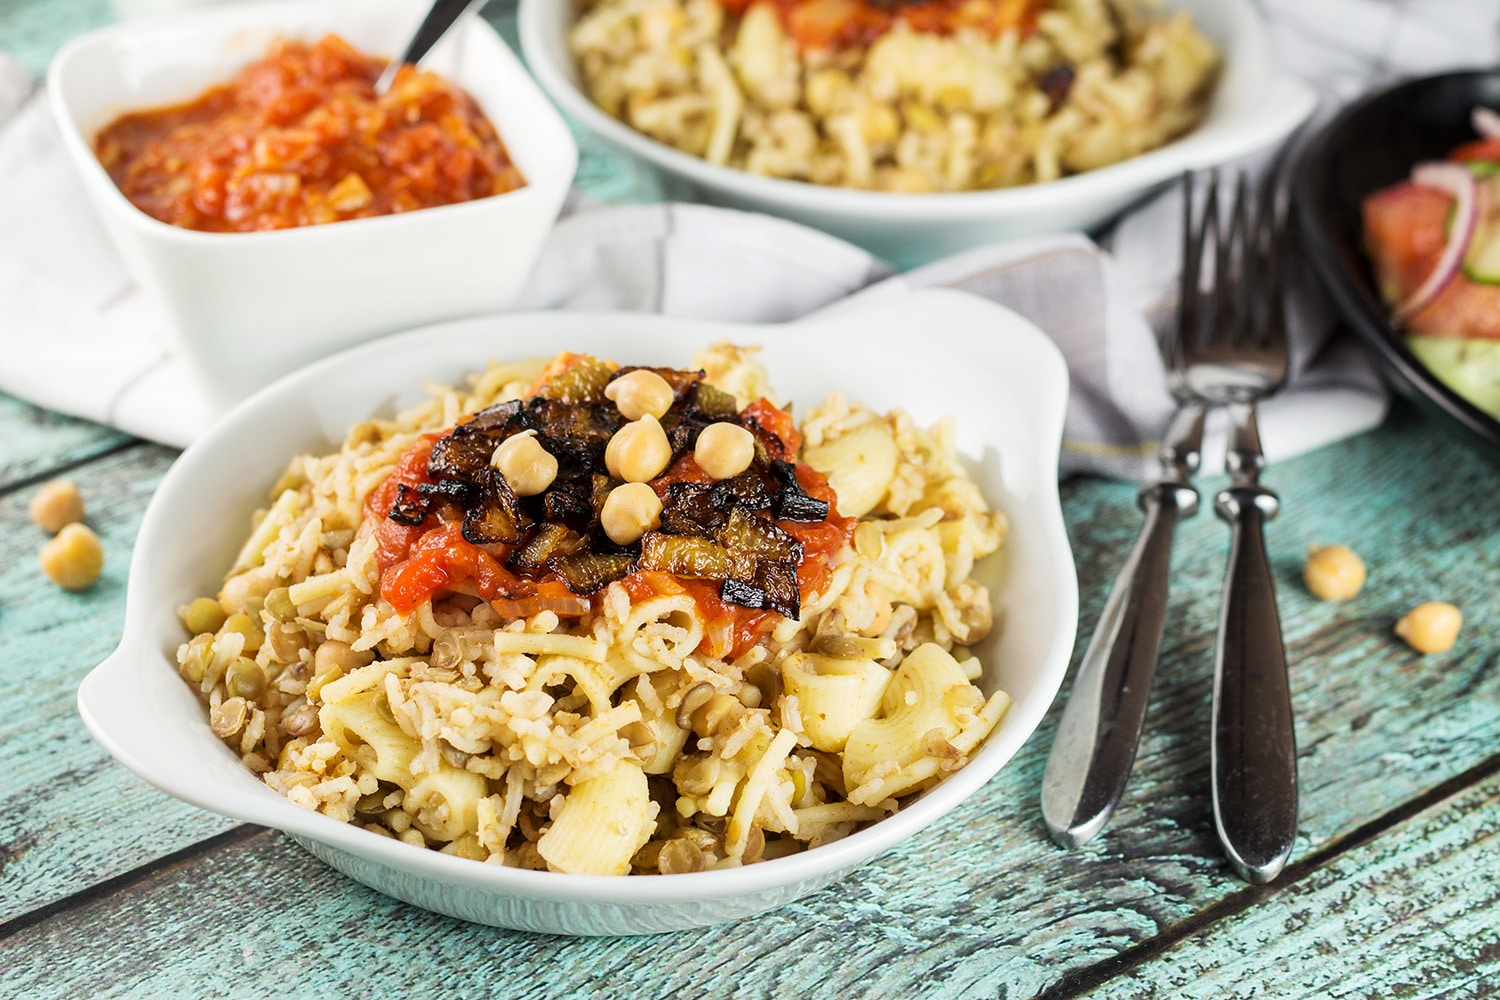 Koshari, or lentils and rice, is a national Egyptian dish. It also features pasta, chickpeas, fried onions, and a homemade tomato sauce. Healthy, filling, nutritious! #vegetarian #vegan  cookingtheglobe.com